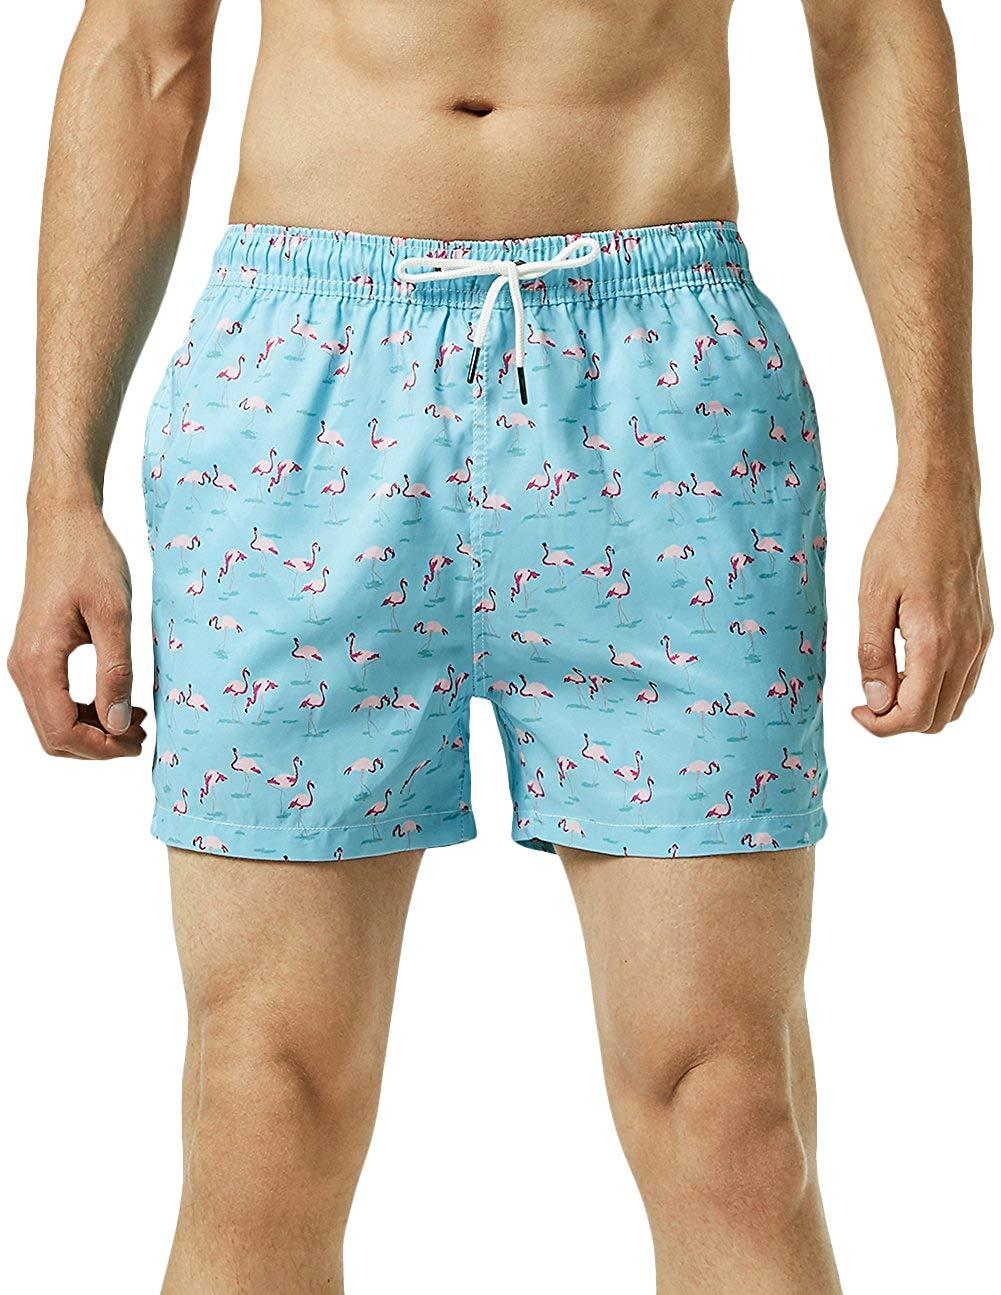 b1d2fbd942 2019 MaaMgic Mens Slim Fit Quick Dry Short Swim Trunks With Mesh Lining  From Ounijiang, $20.21 | DHgate.Com